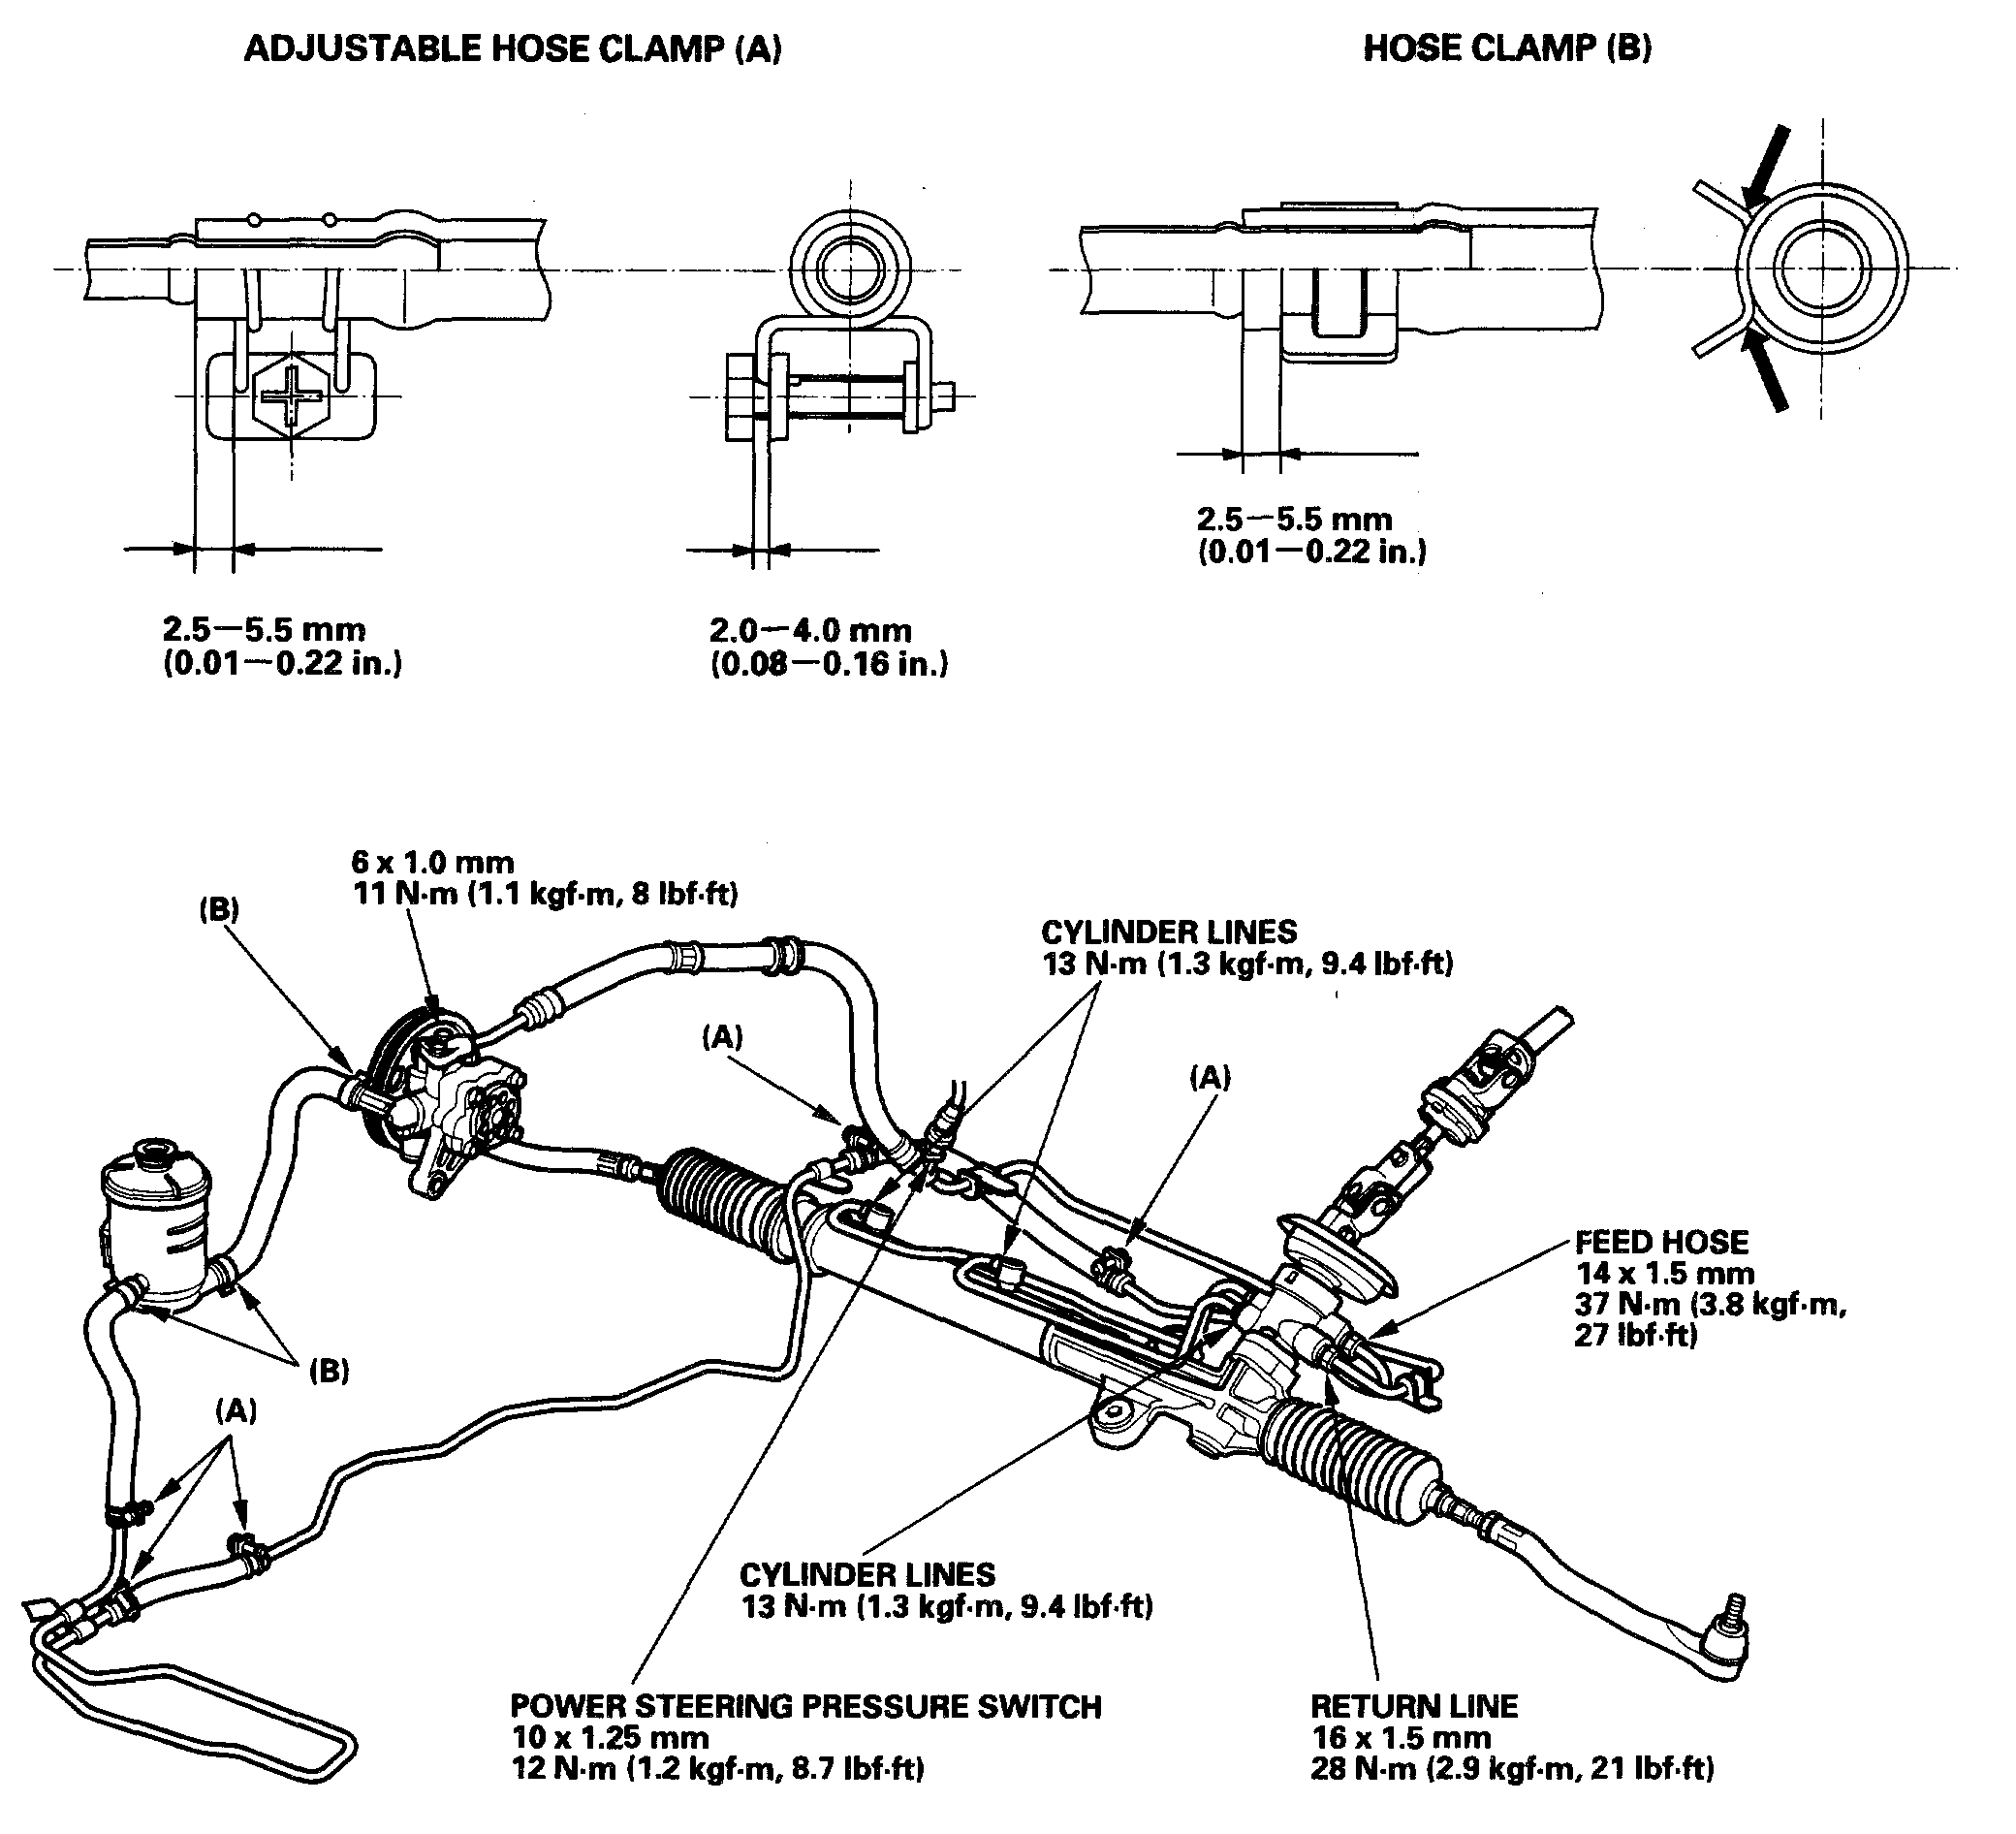 High Pressure Power Steering Line Replacement Cost